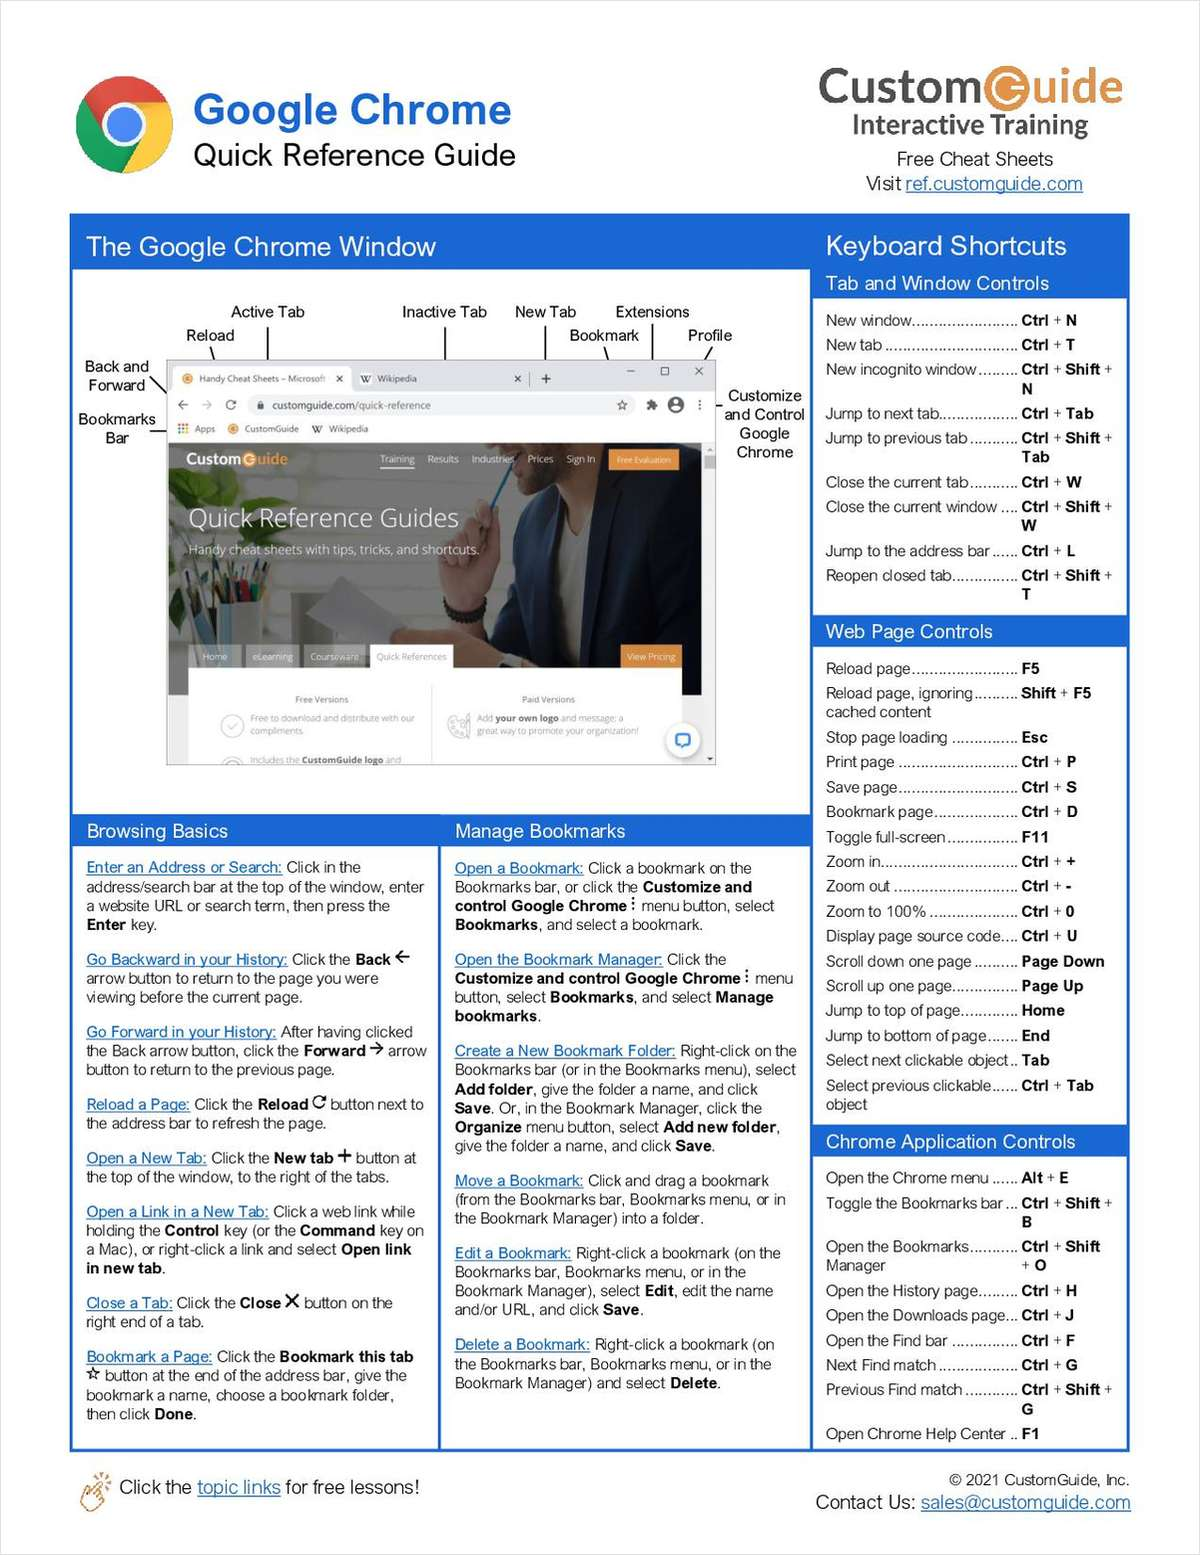 Google Chrome Quick Reference Guide